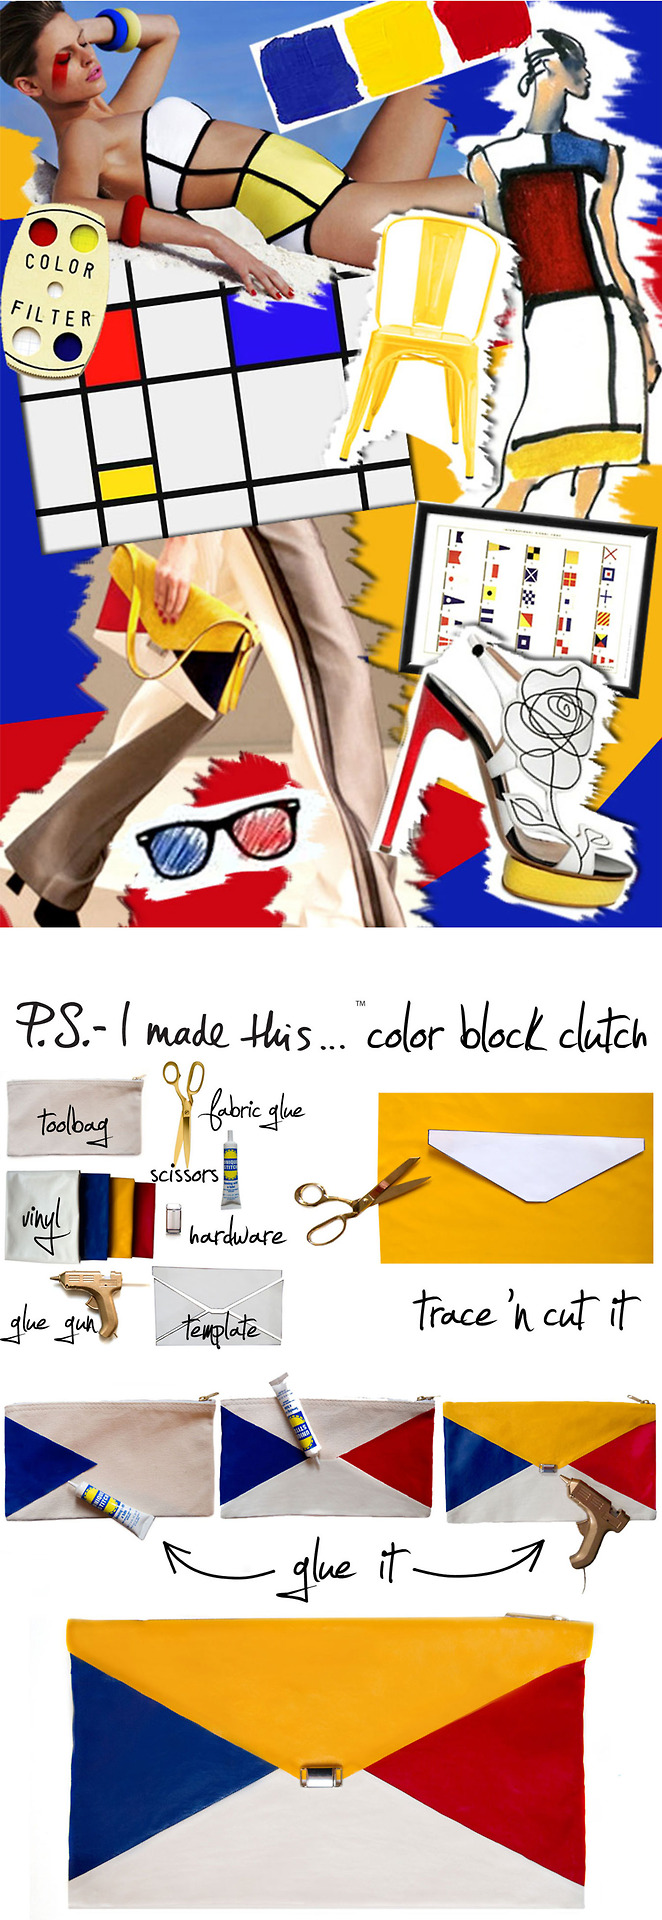 color_block_clutch-tumblr_MERGED